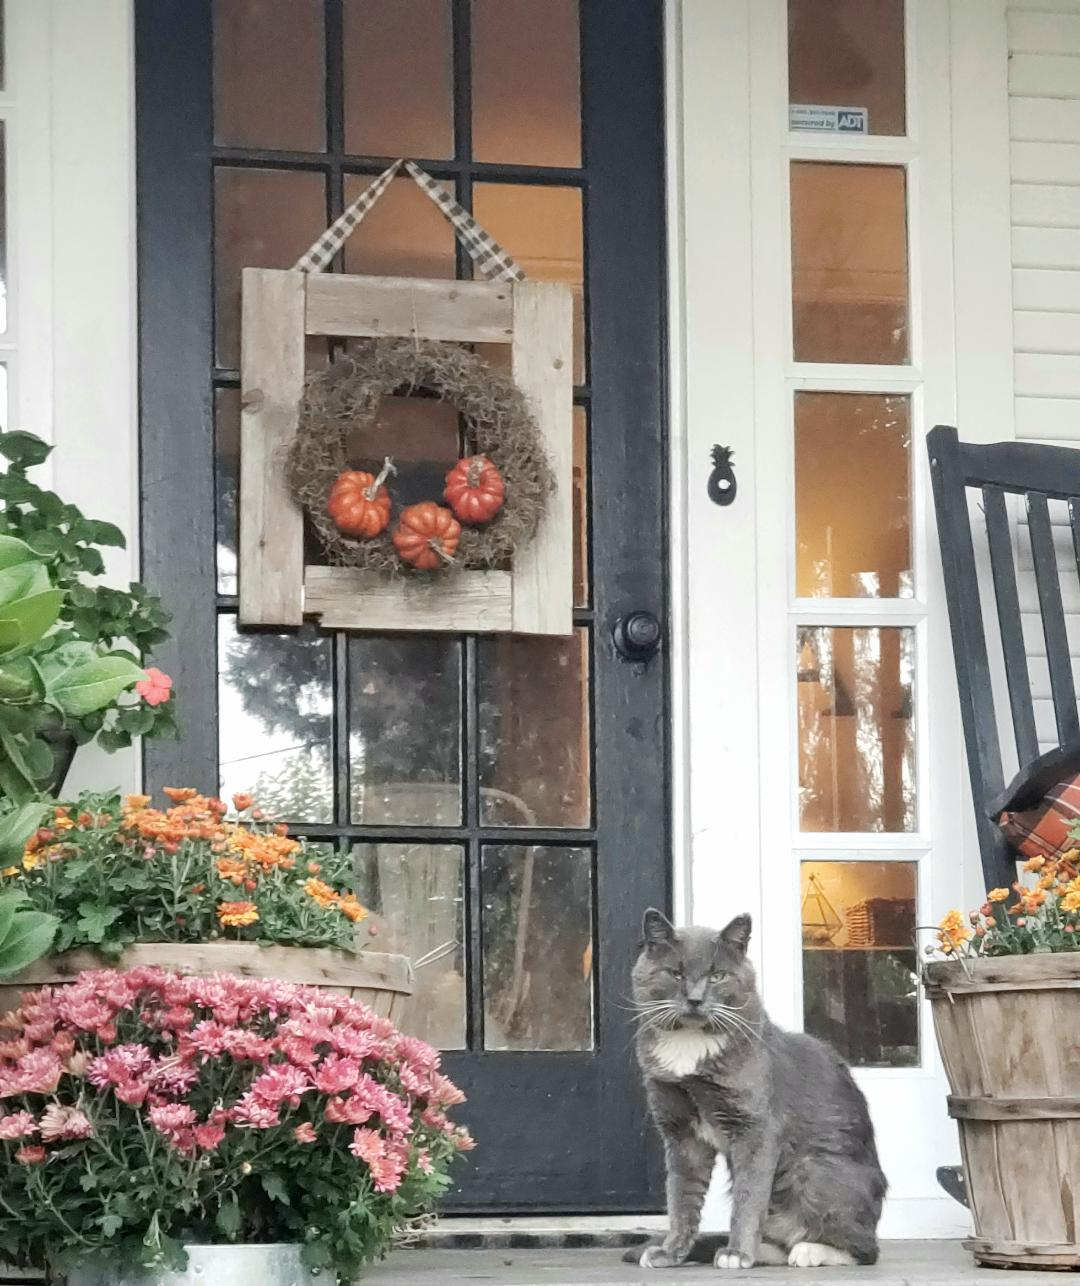 Porch entryway with cat